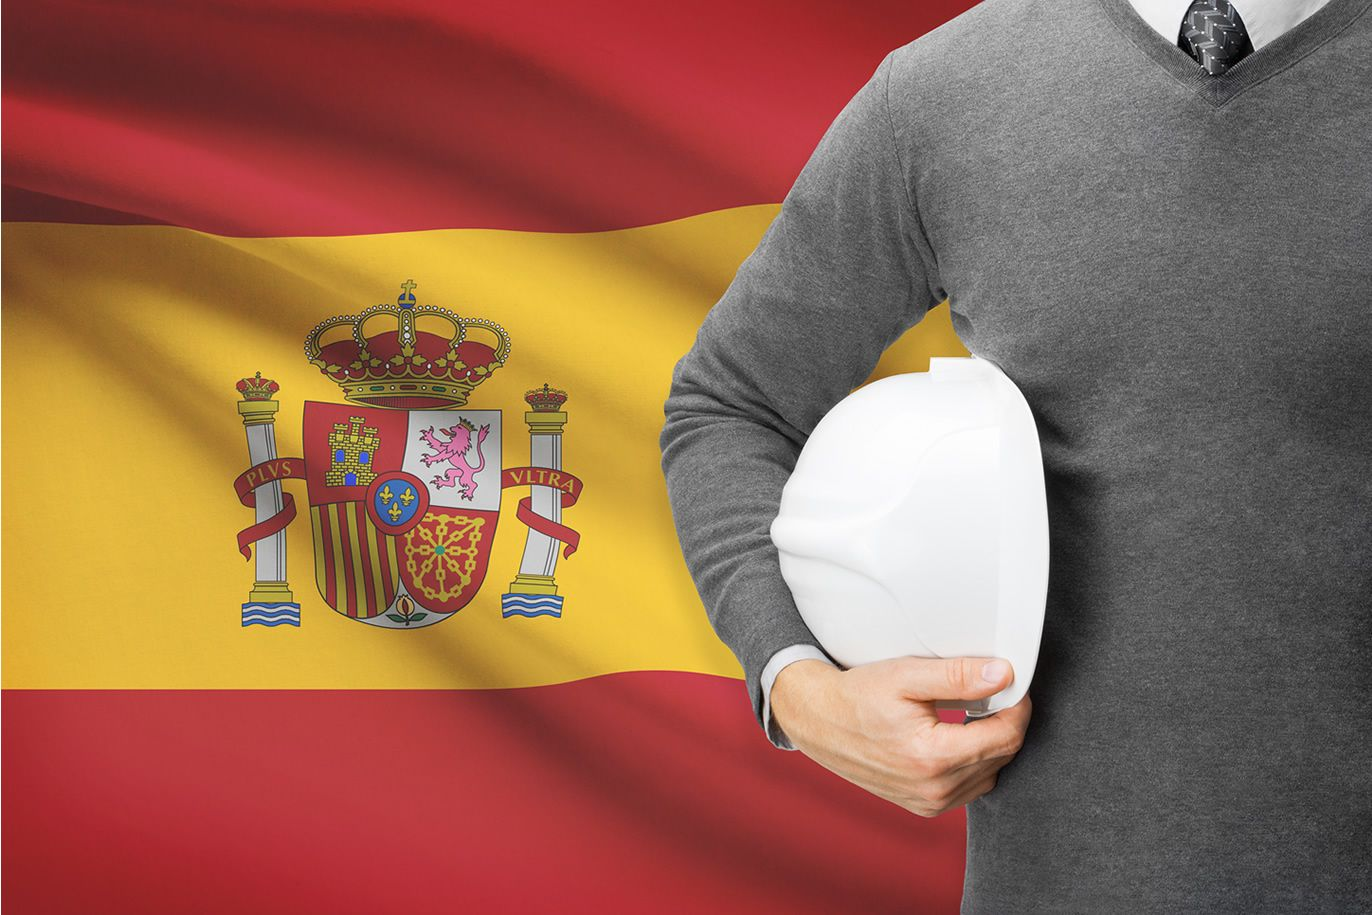 Advice for expats looking to get a job in Spain